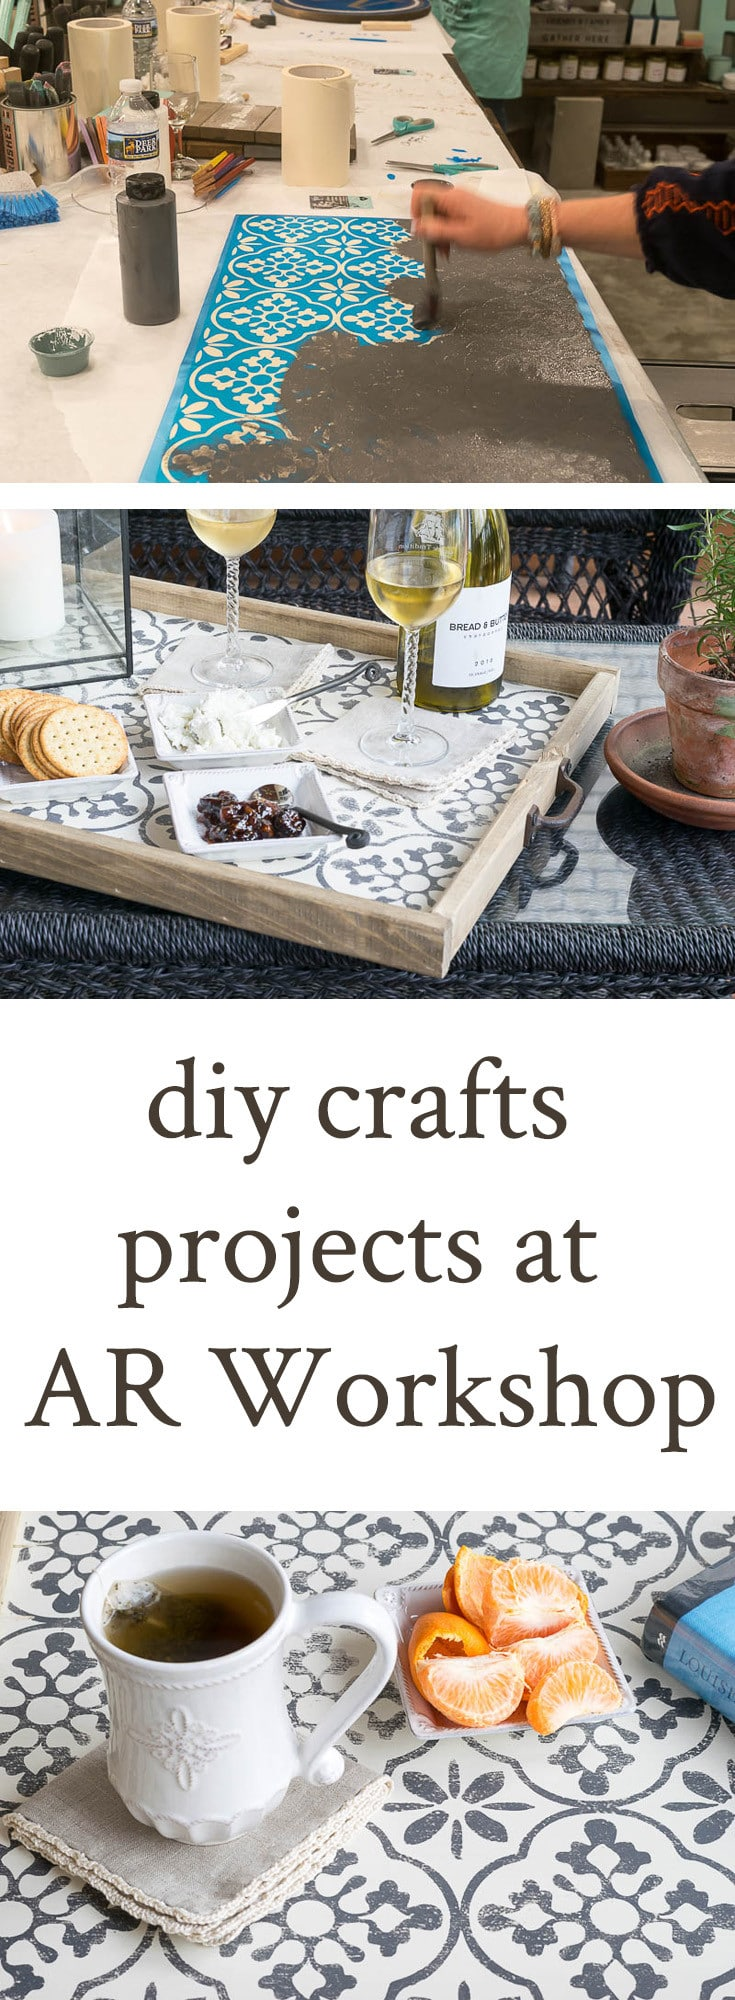 Are you familiar with AR Workshops? For creative sorts, it's a dream come true! This chain of DIY Crafts Boutiques throughout the US caters to DIY-ers with a wide variety of home decor diy projects. Perfect venue for a girl's night, birthday party, shower and date night.